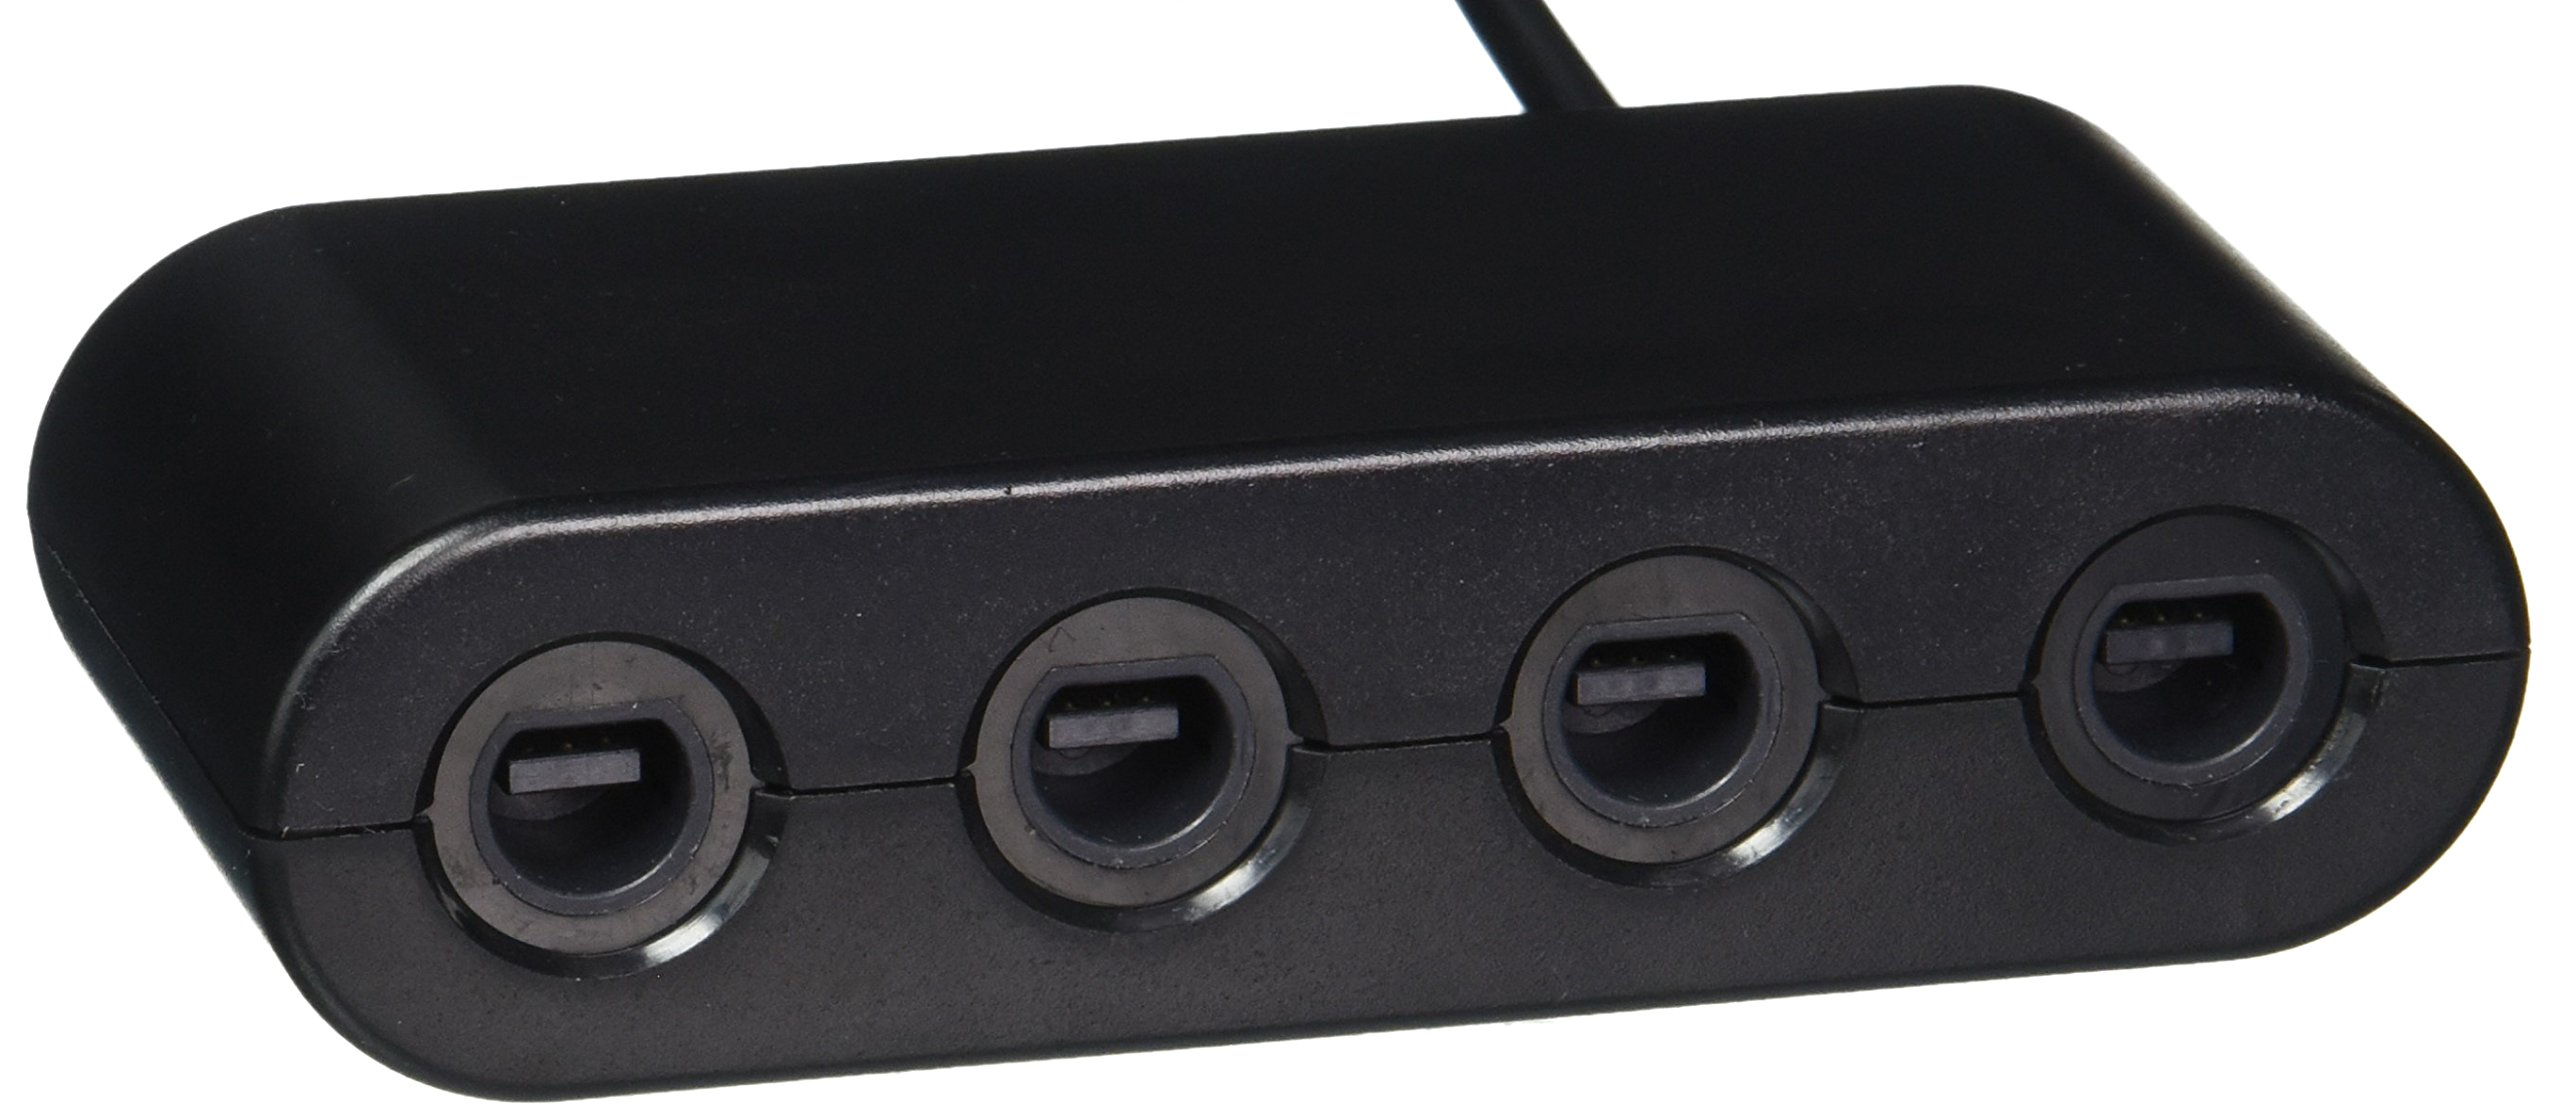 Tomee 4-Port GameCube Controller Adapter for Wii